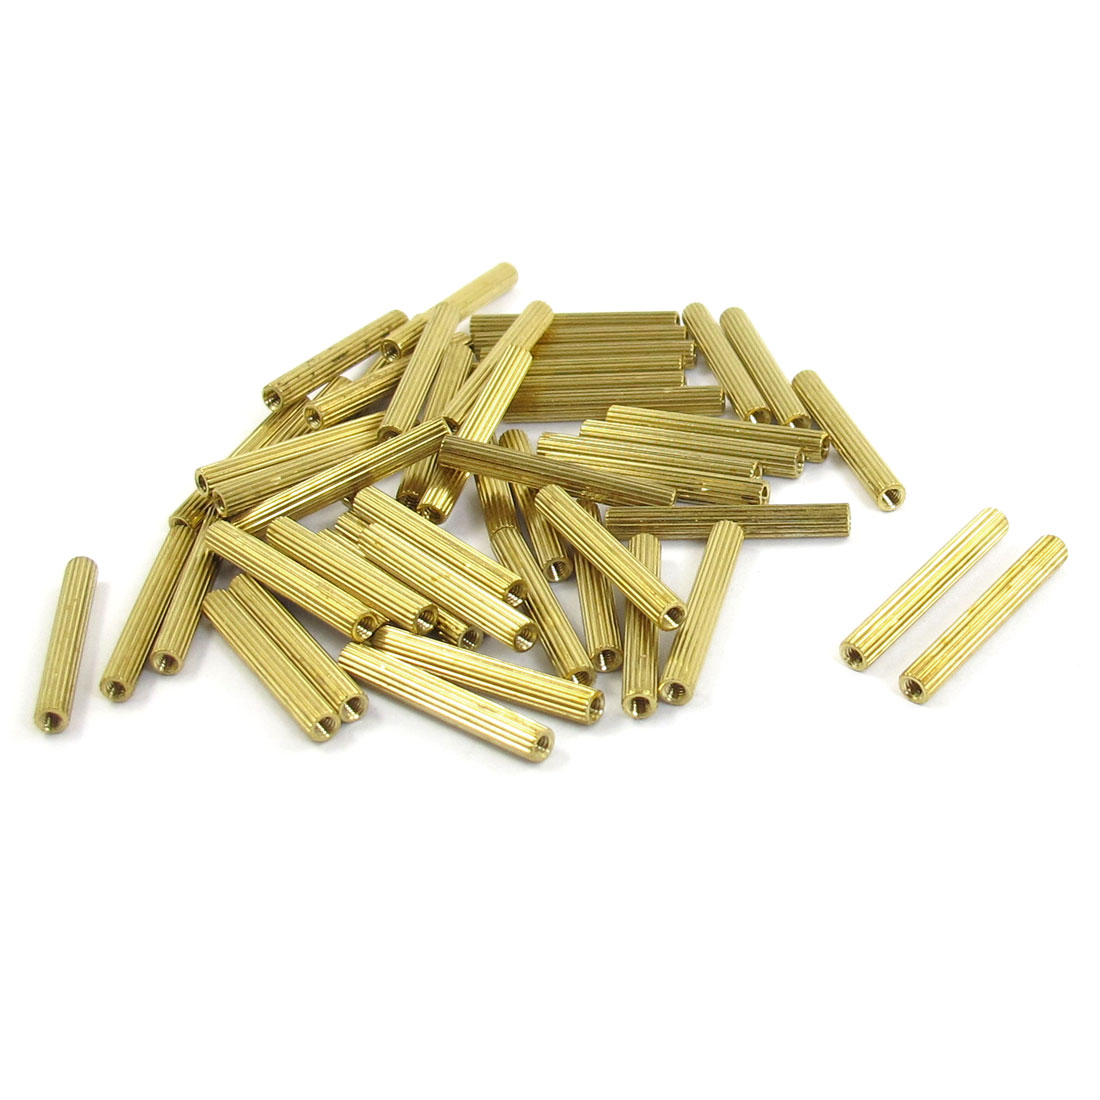 M2x23mm Cylinder Shaped Female Threaded Brass Standoff Spacer 50Pcs